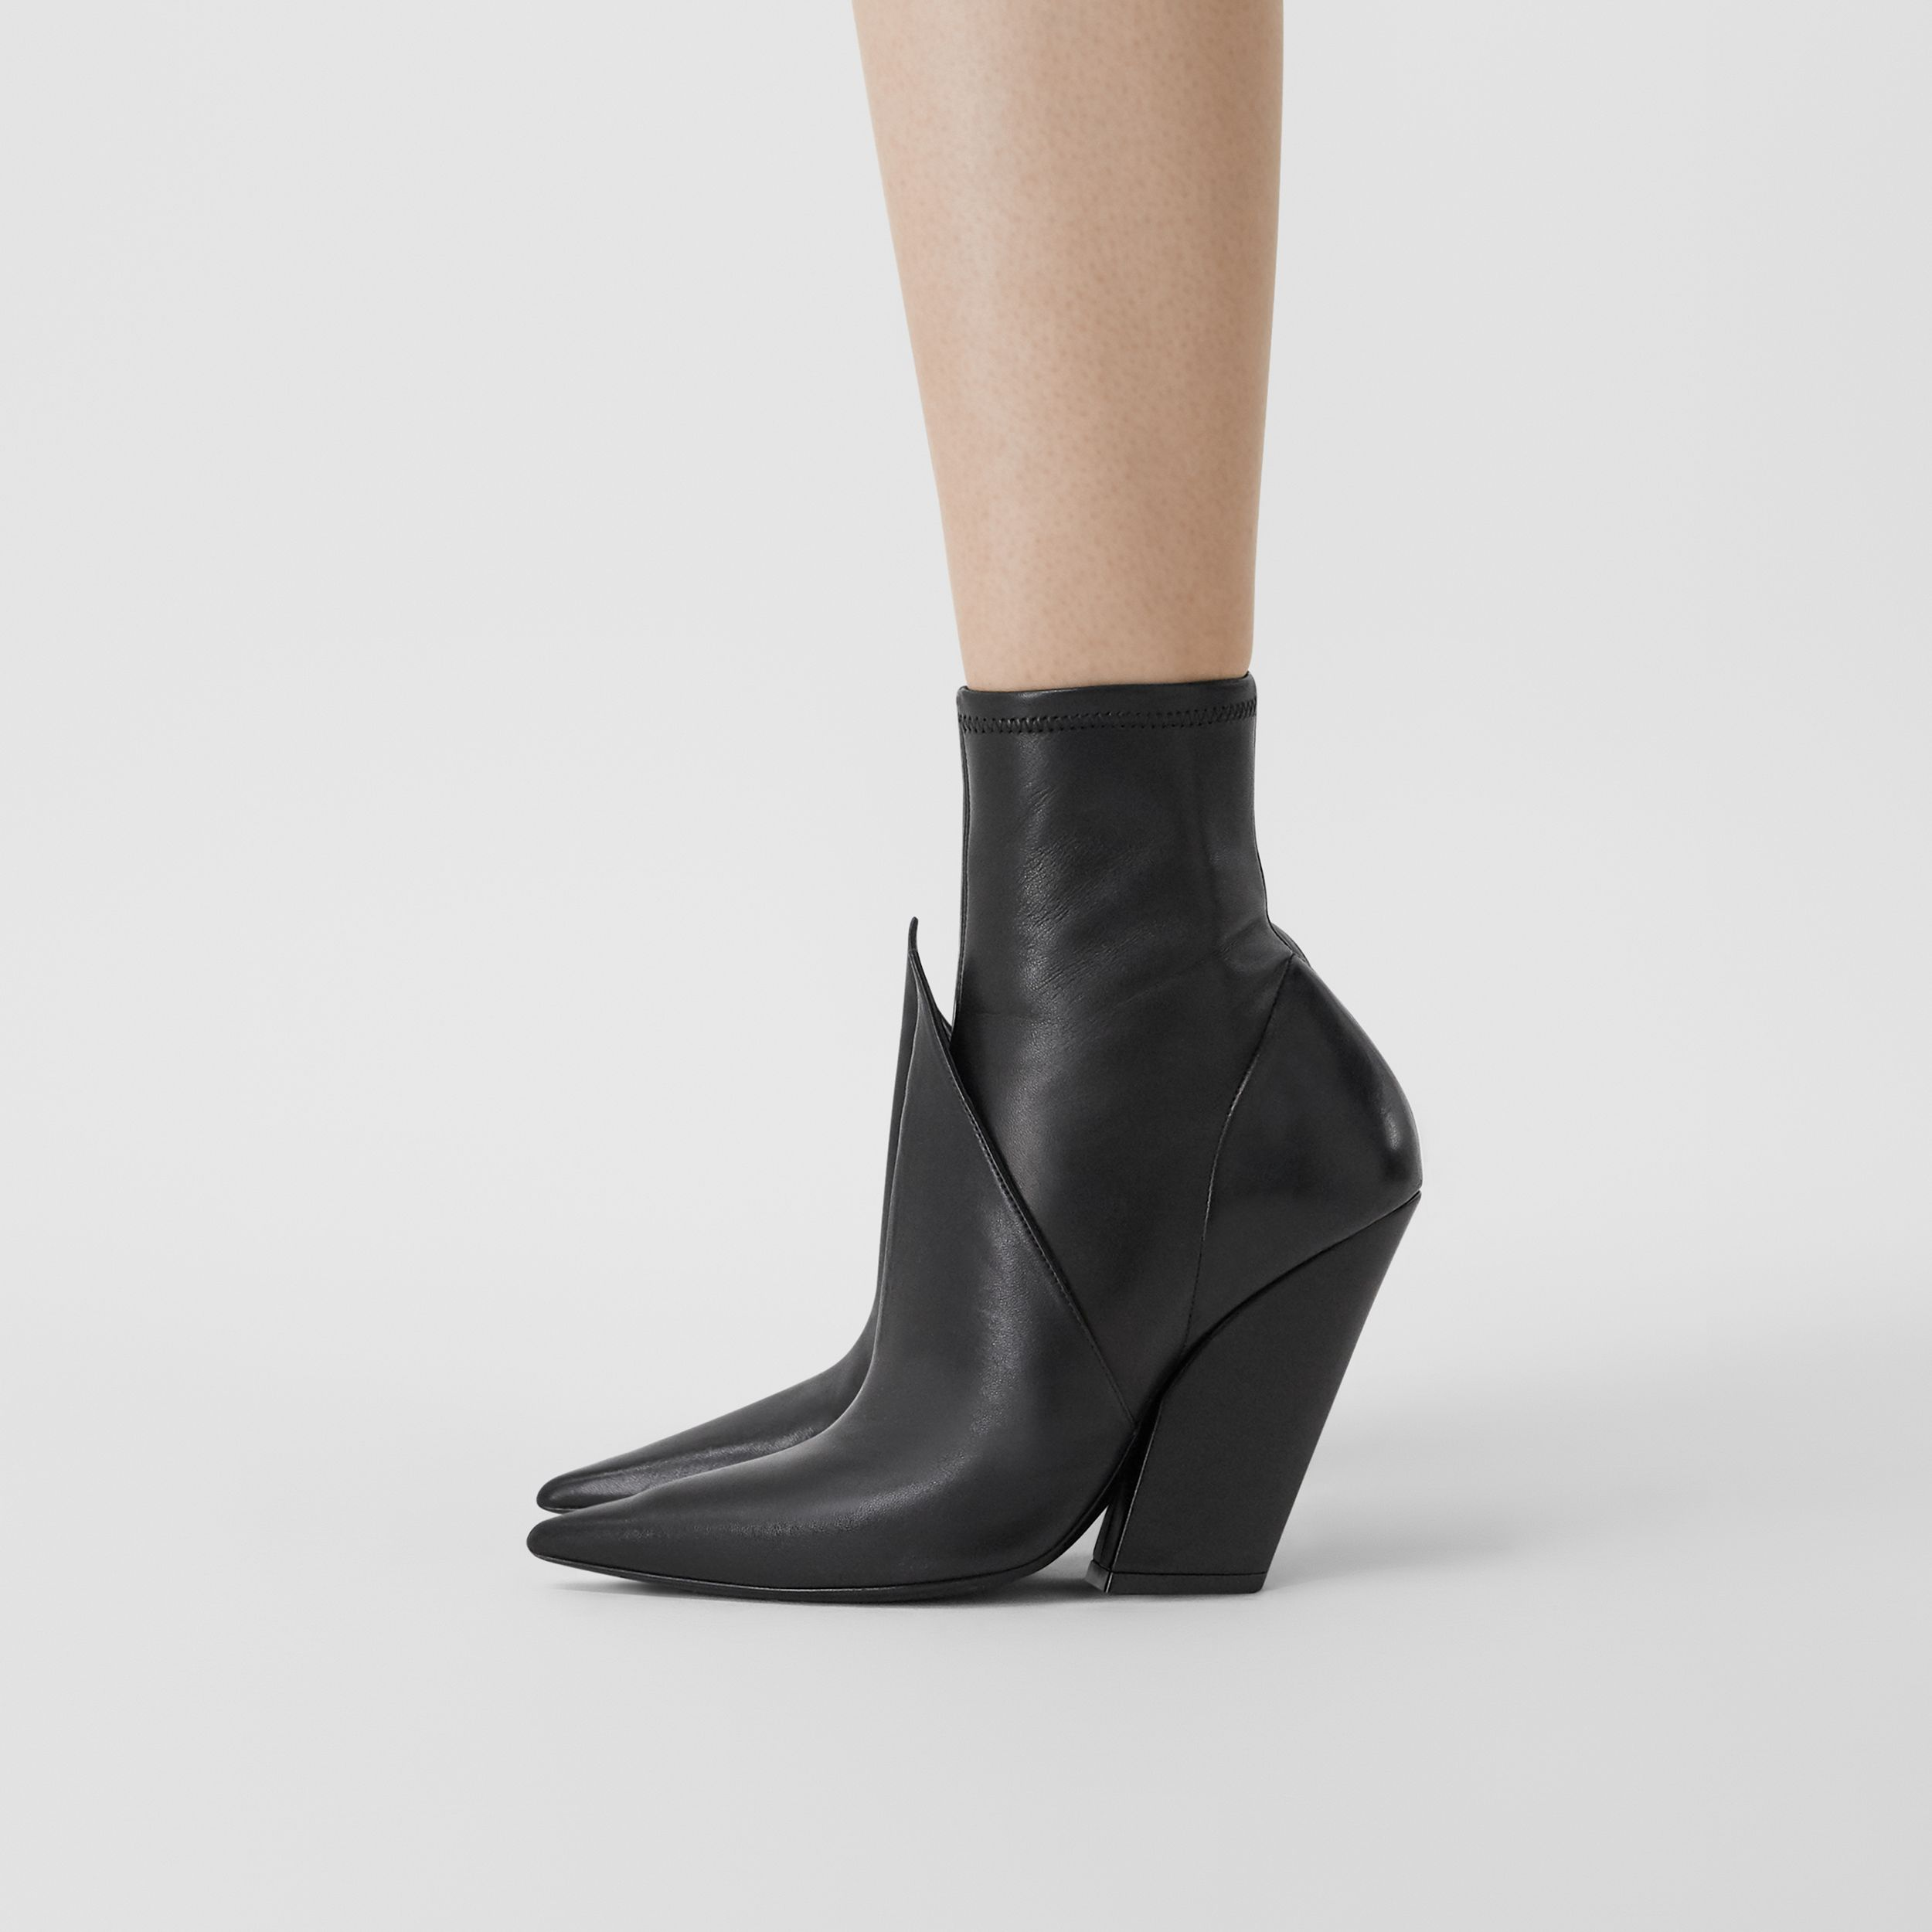 Panelled Lambskin Ankle Boots in Black - Women | Burberry - 3